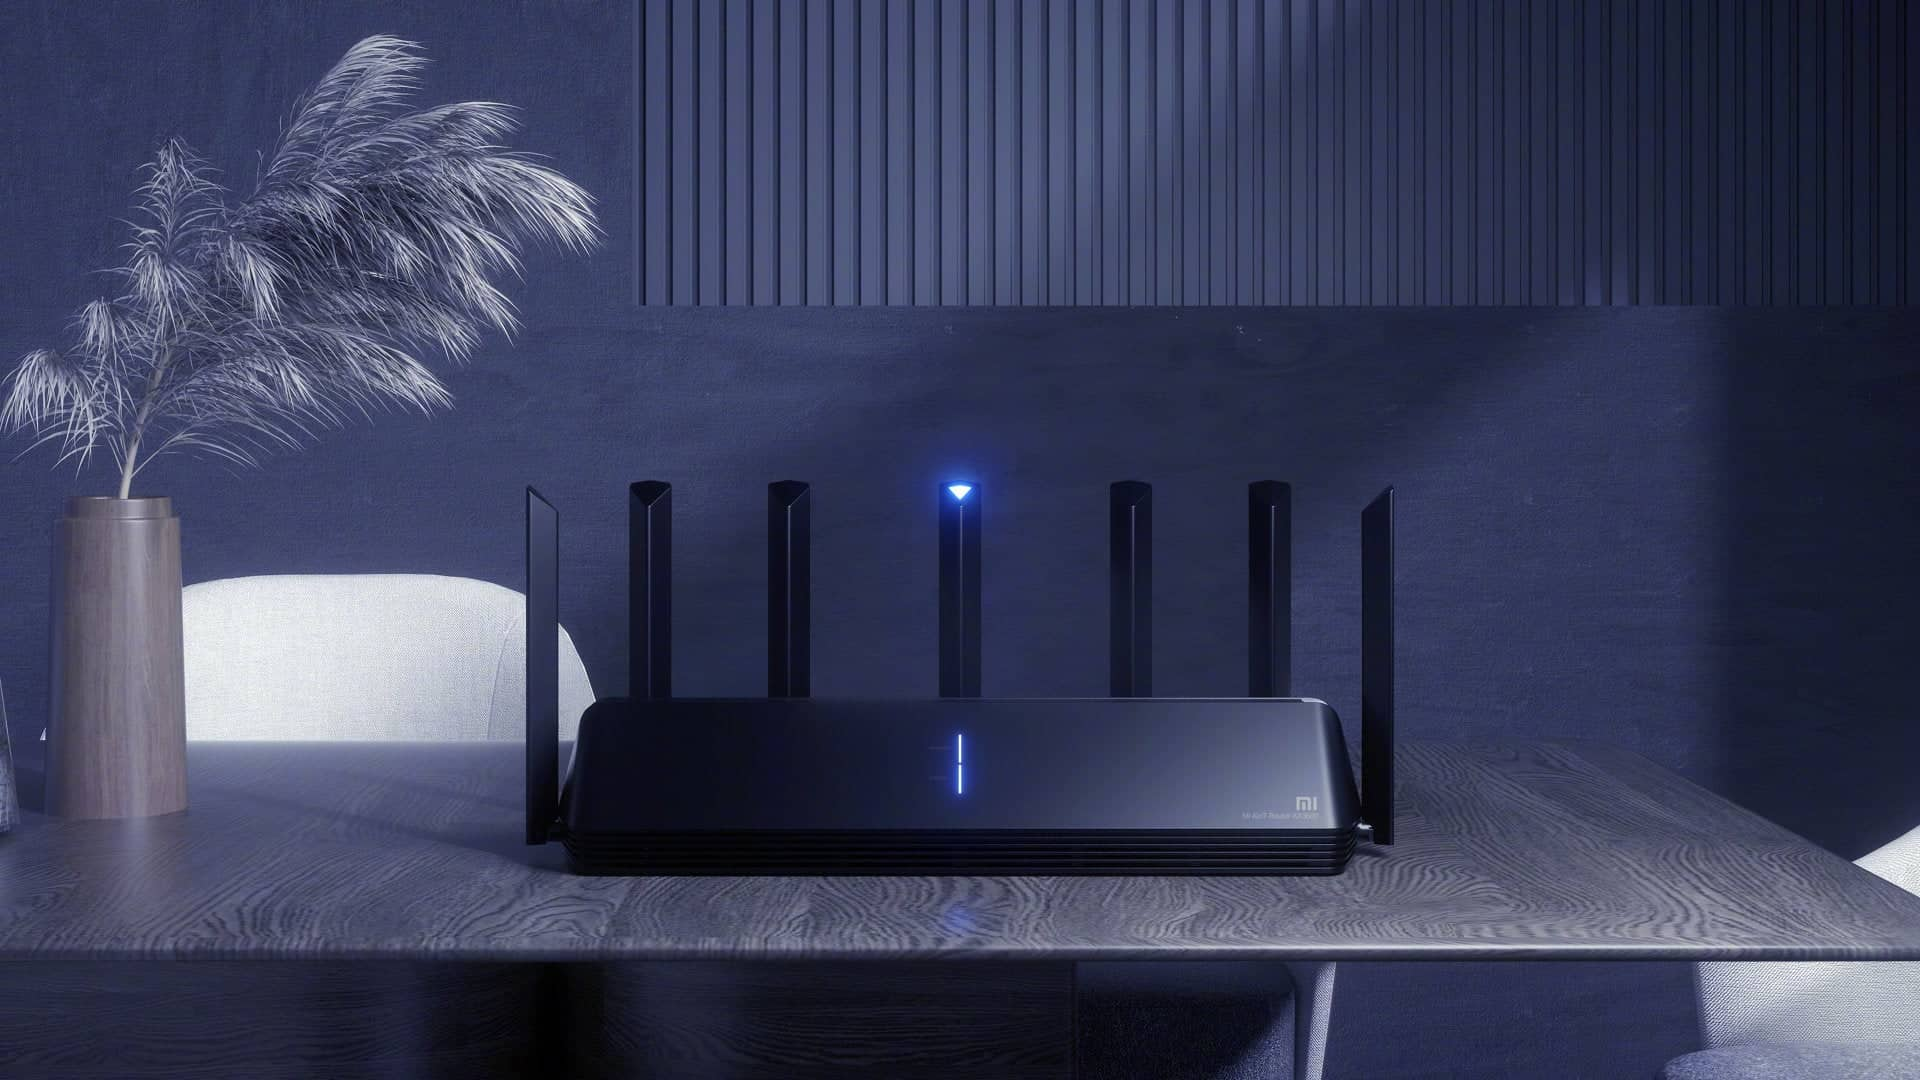 Xiaomi's first Wi-Fi 6 router